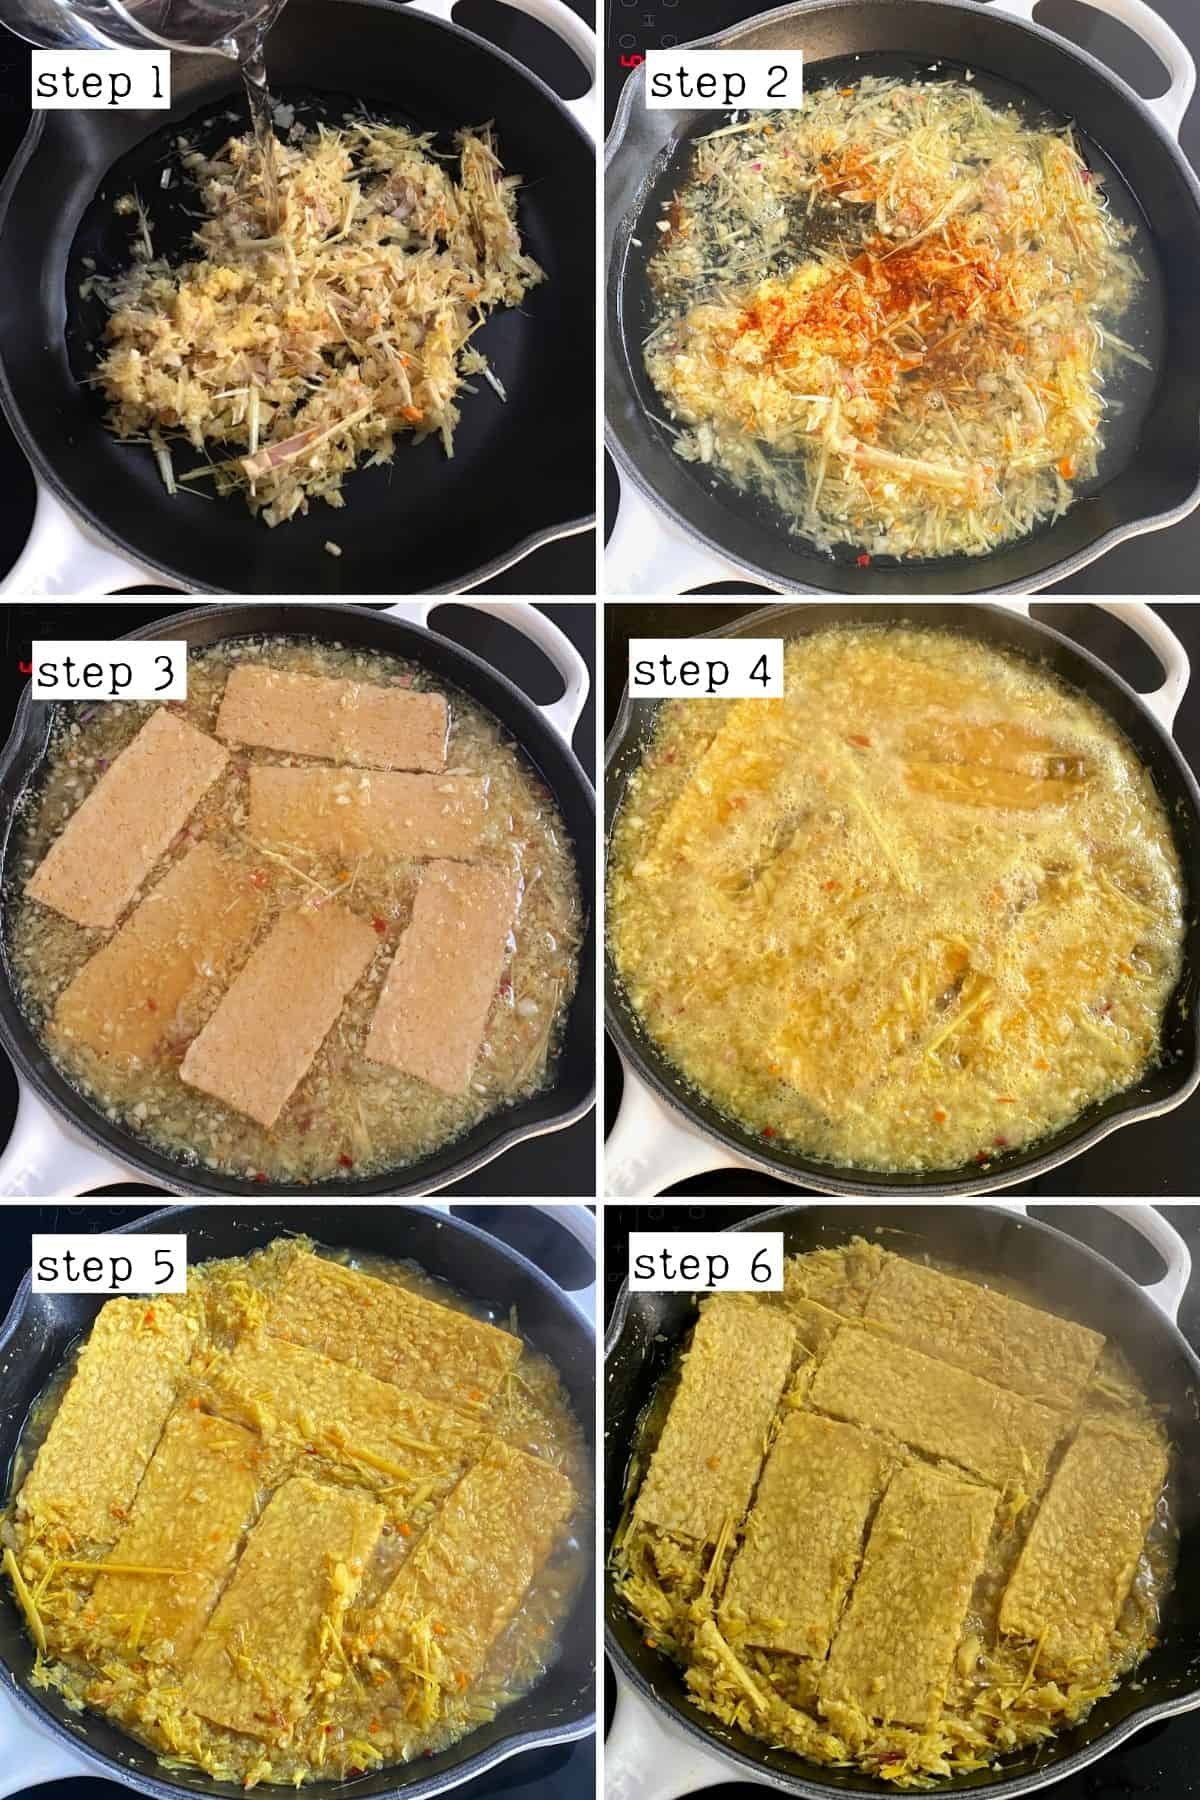 The steps for cooking tempeh